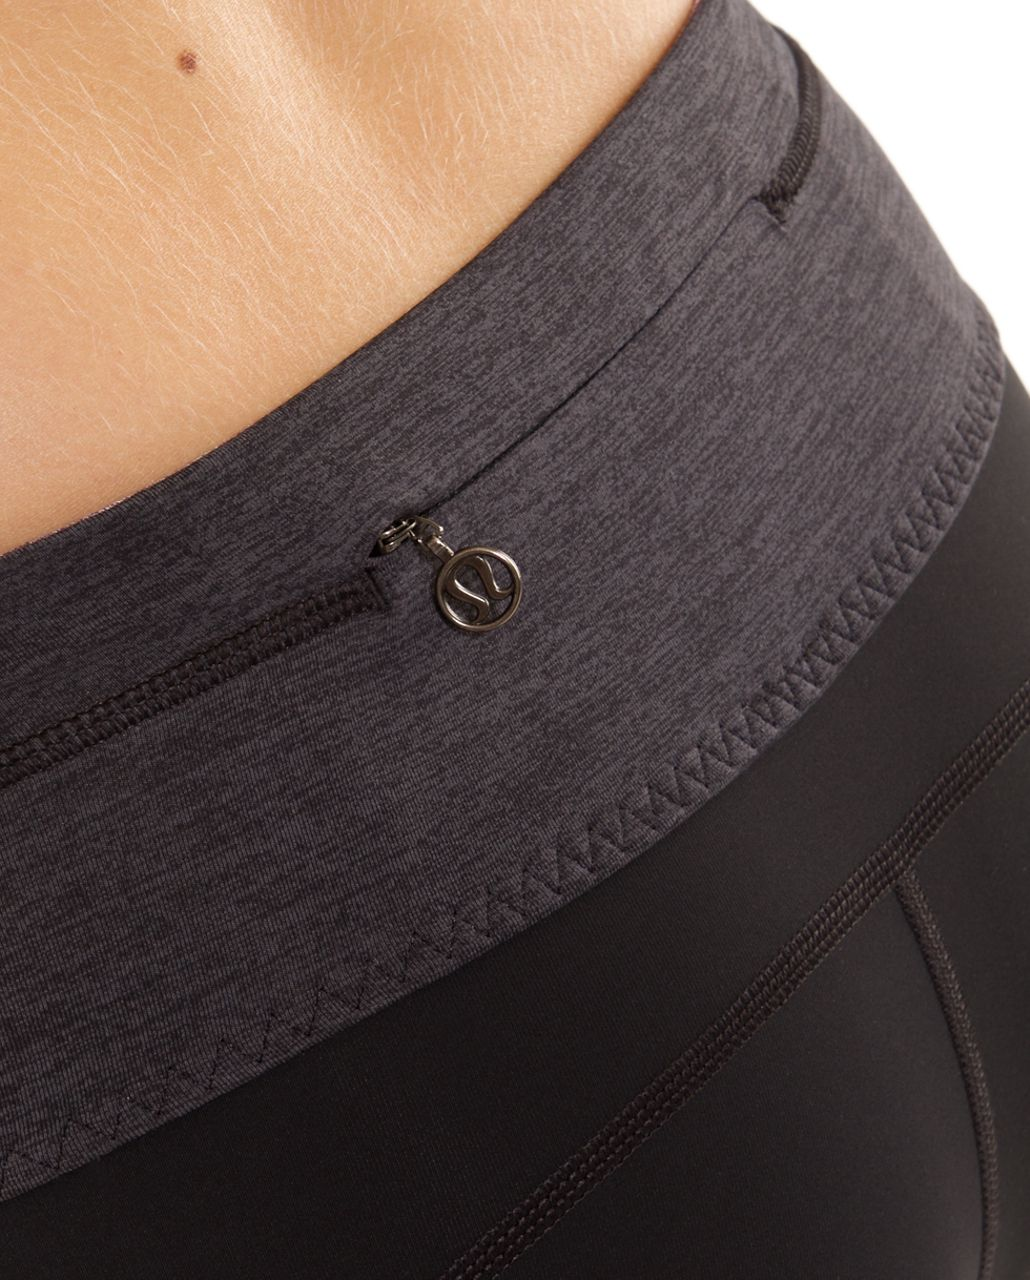 Lululemon Run:  Your Heart Out Crop - Black /  Heathered Black /  Currant Poncho Stripe